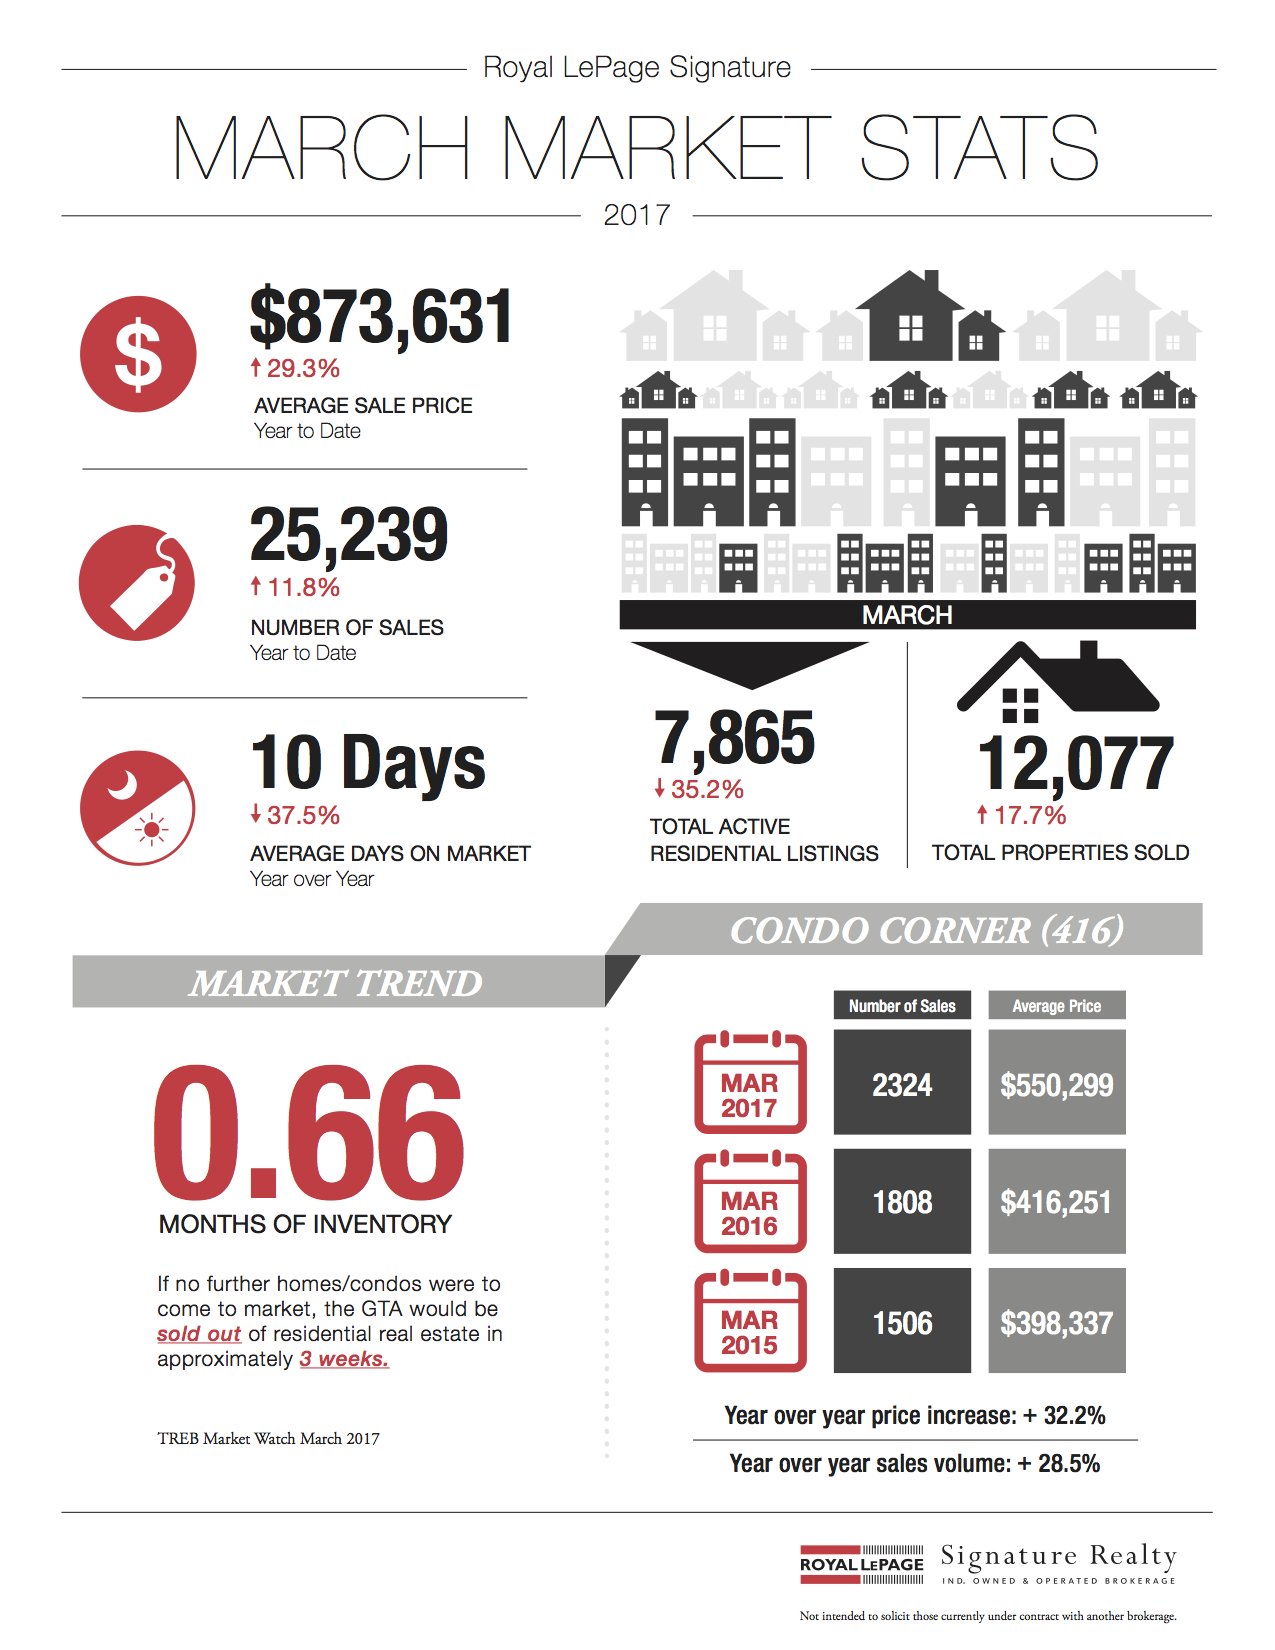 March 2017 Market Stats: Infographic & Report Photo